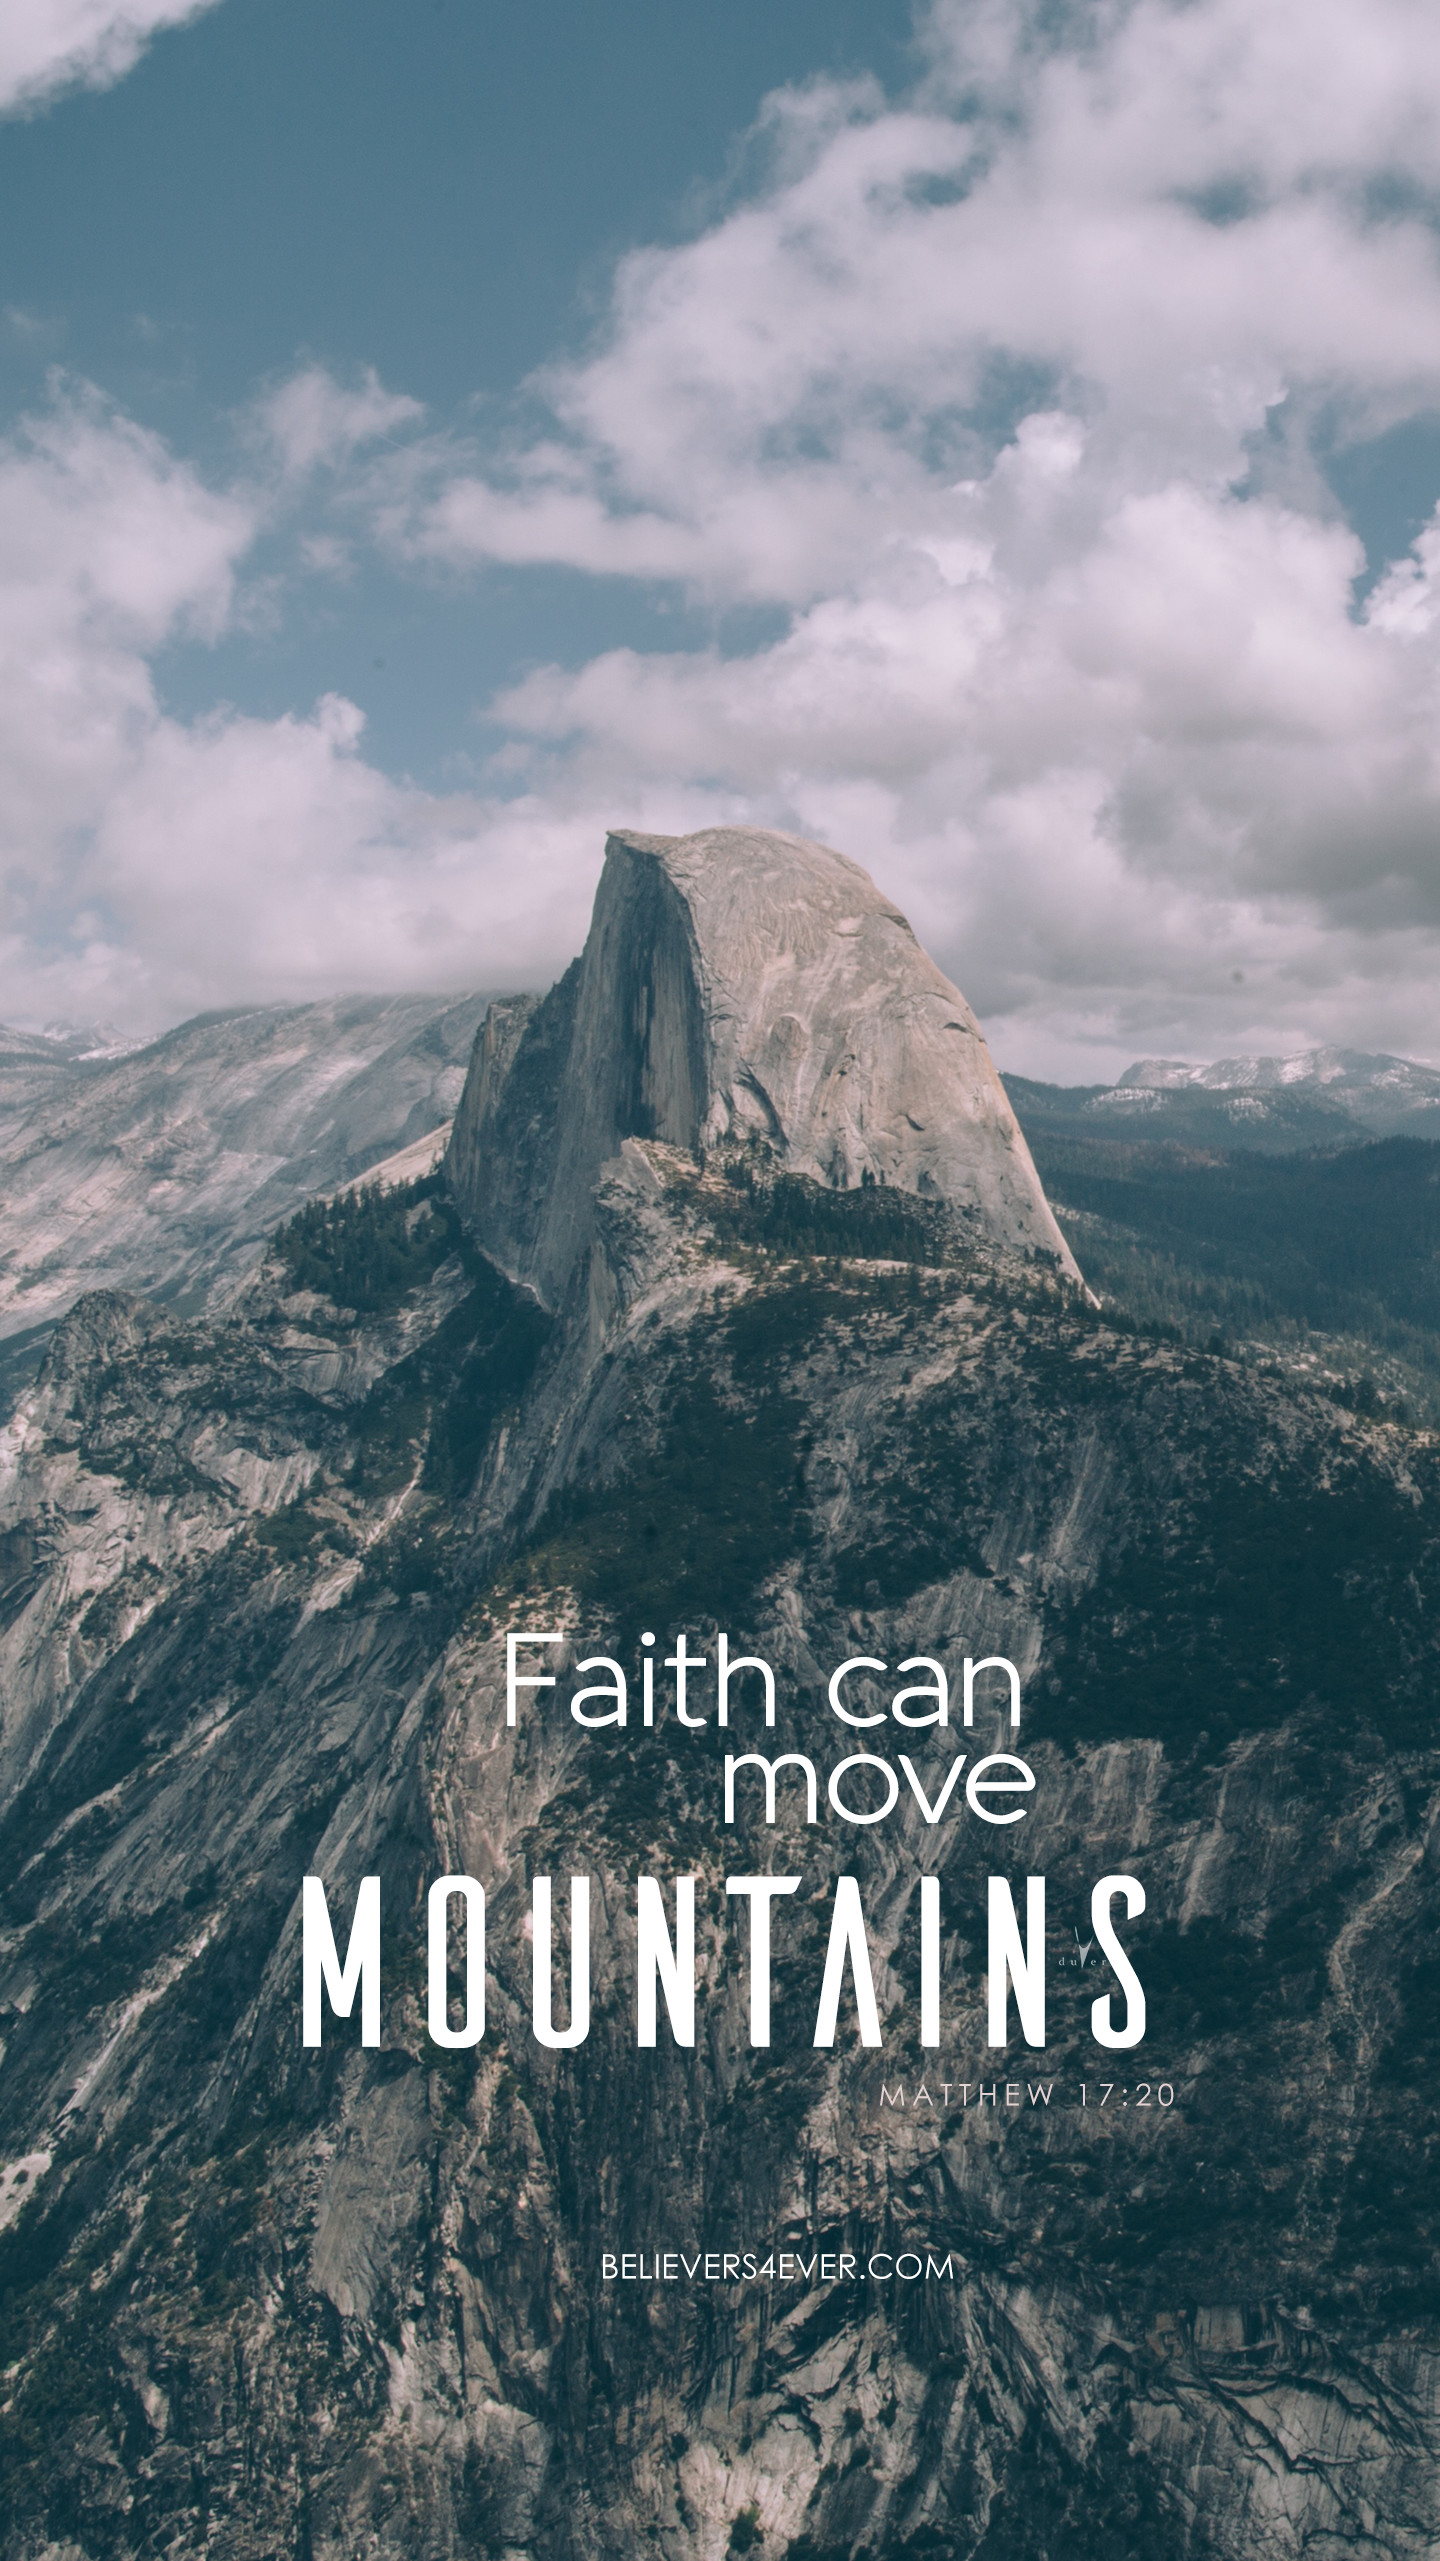 Christian Wallpaper for iPhone 64 images 1440x2561